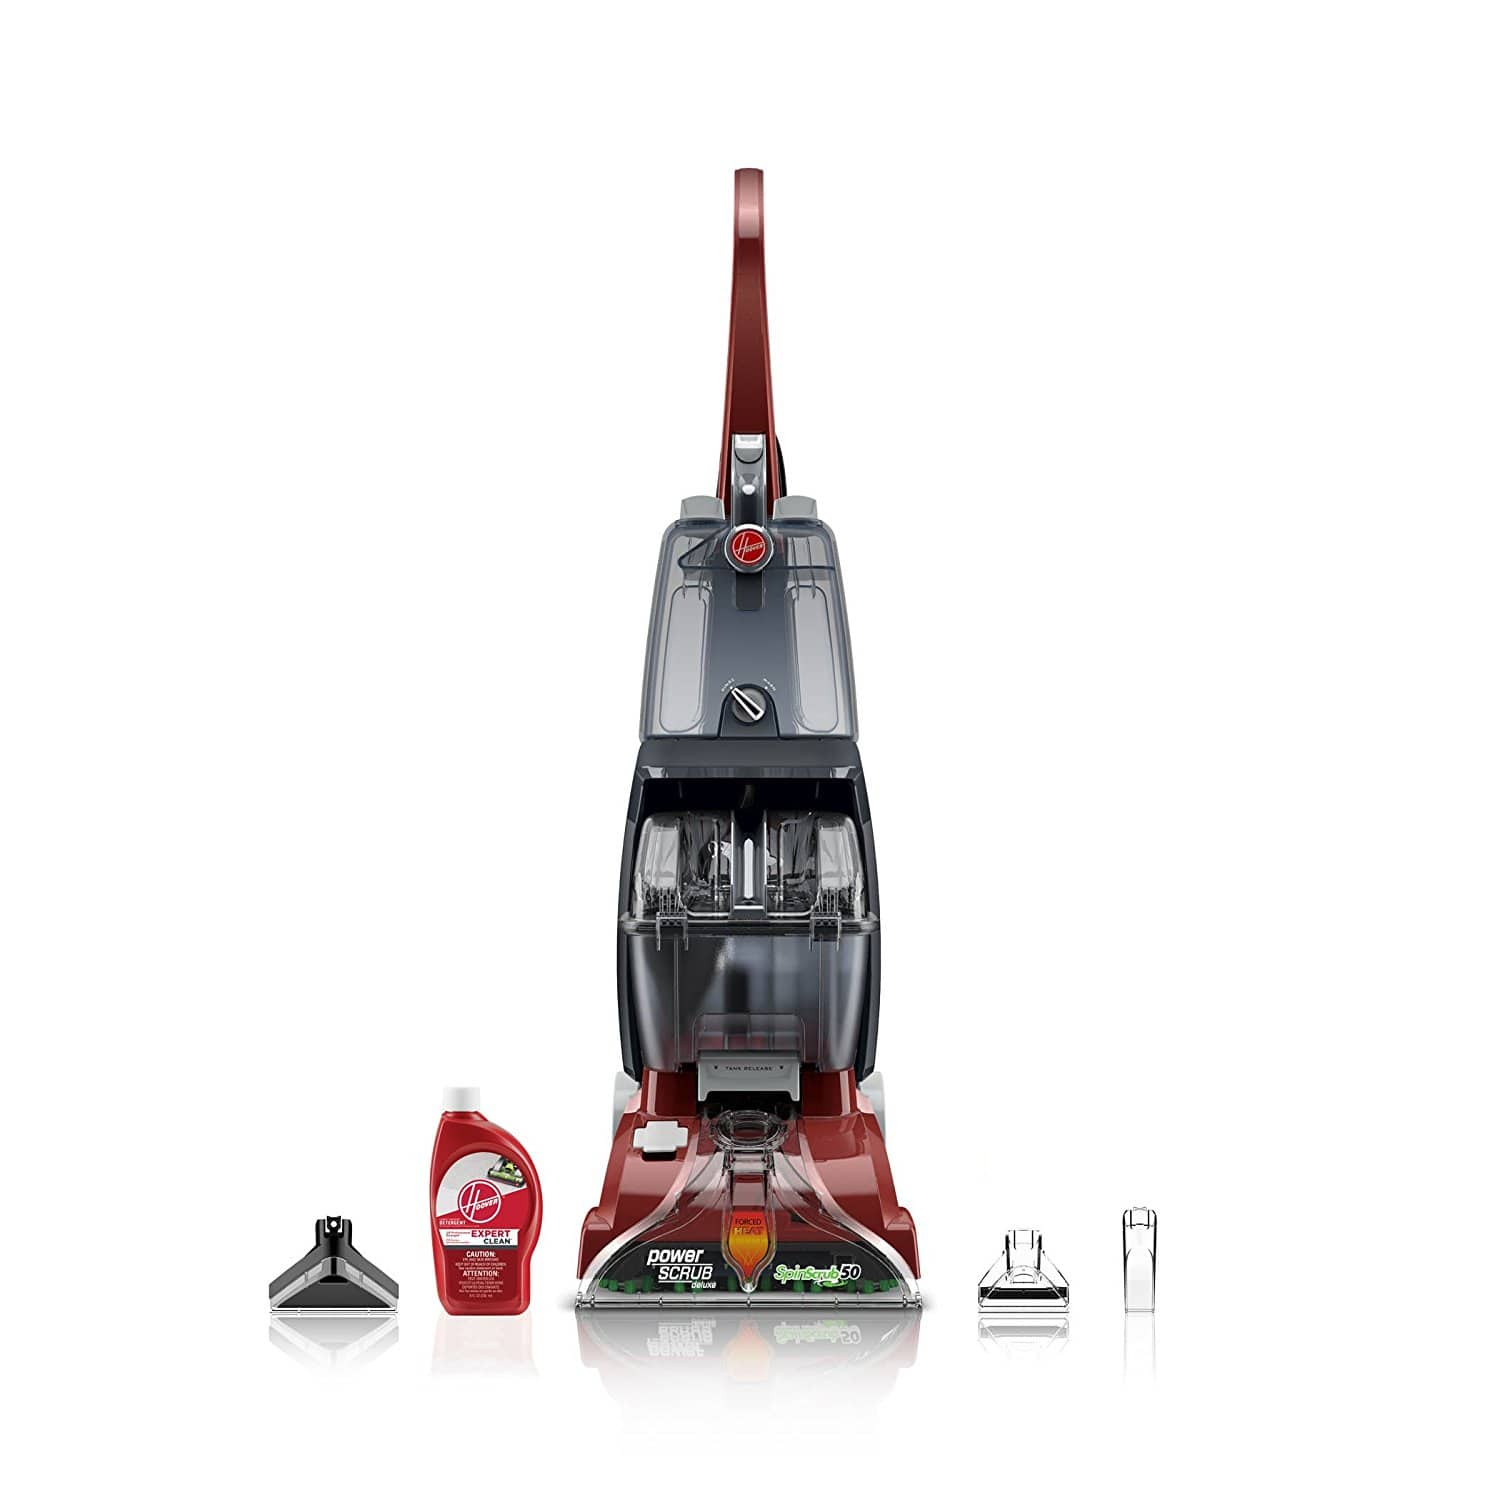 Hoover Power Scrub Deluxe Carpet Washer Slickdeals